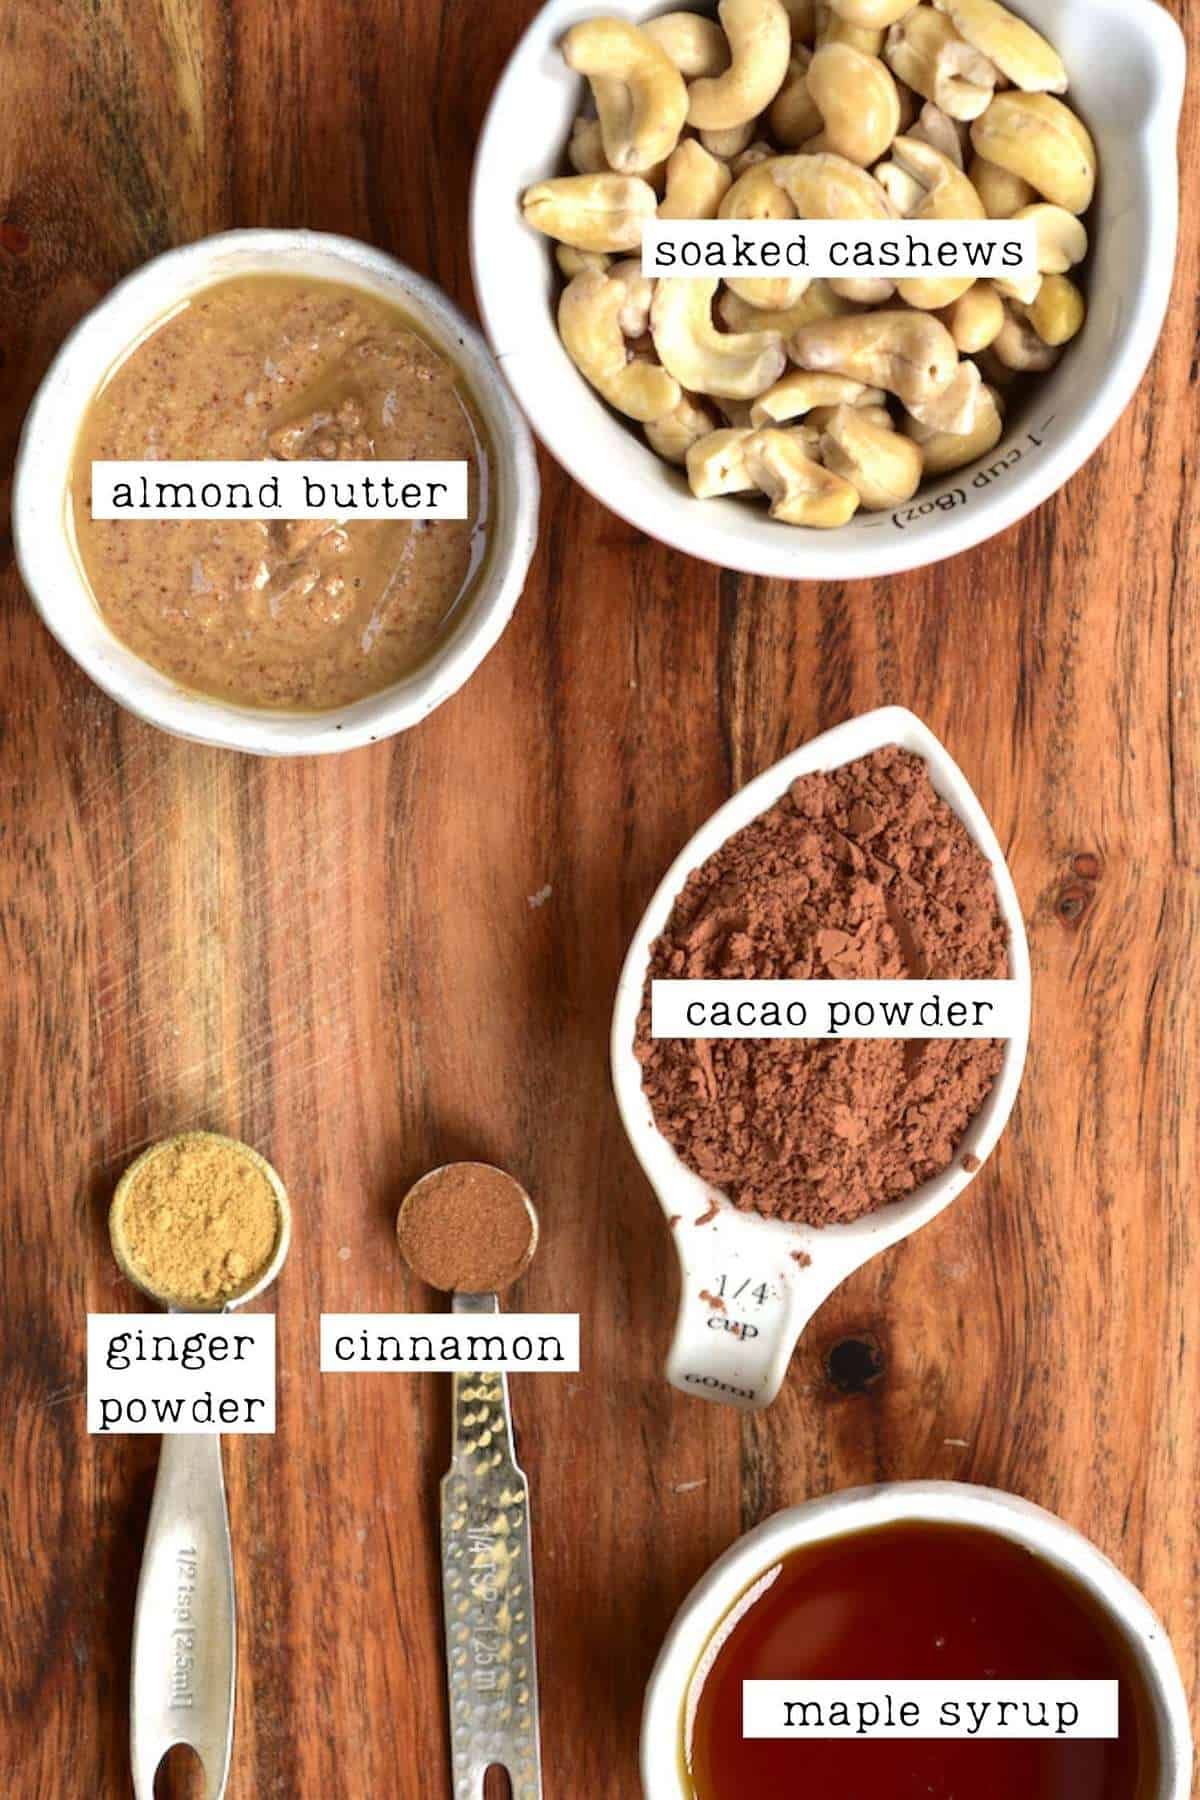 Ingredients for chocolate truffles